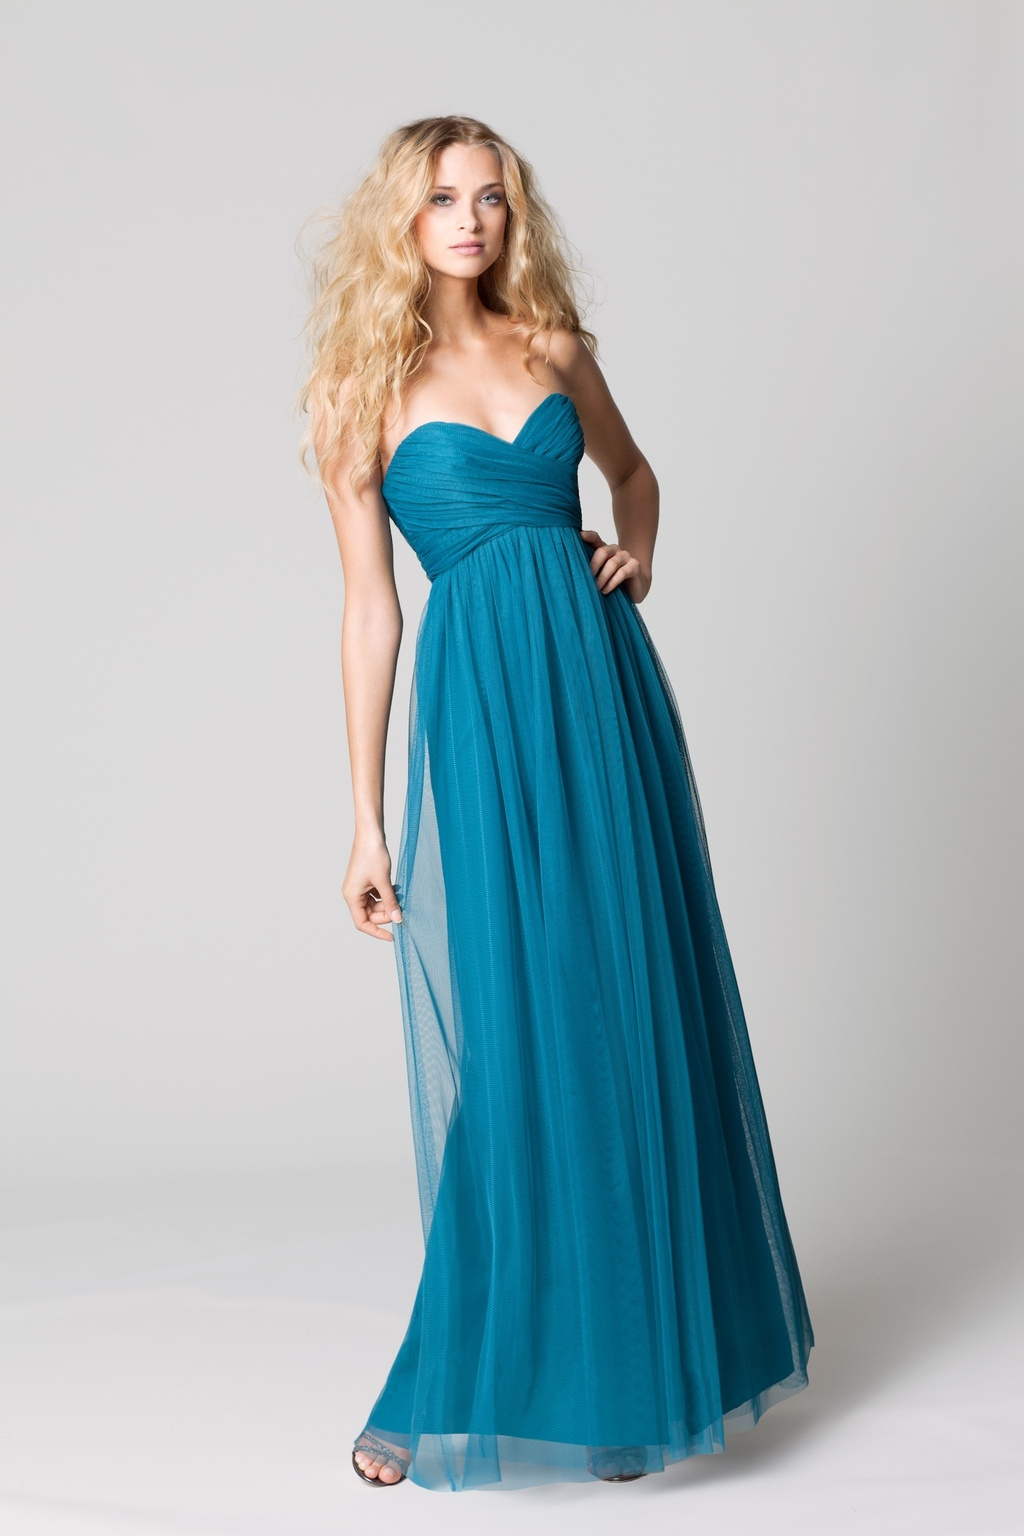 bridesmaids dresses Fall 2012 WTOO by Watters bridal party teal long